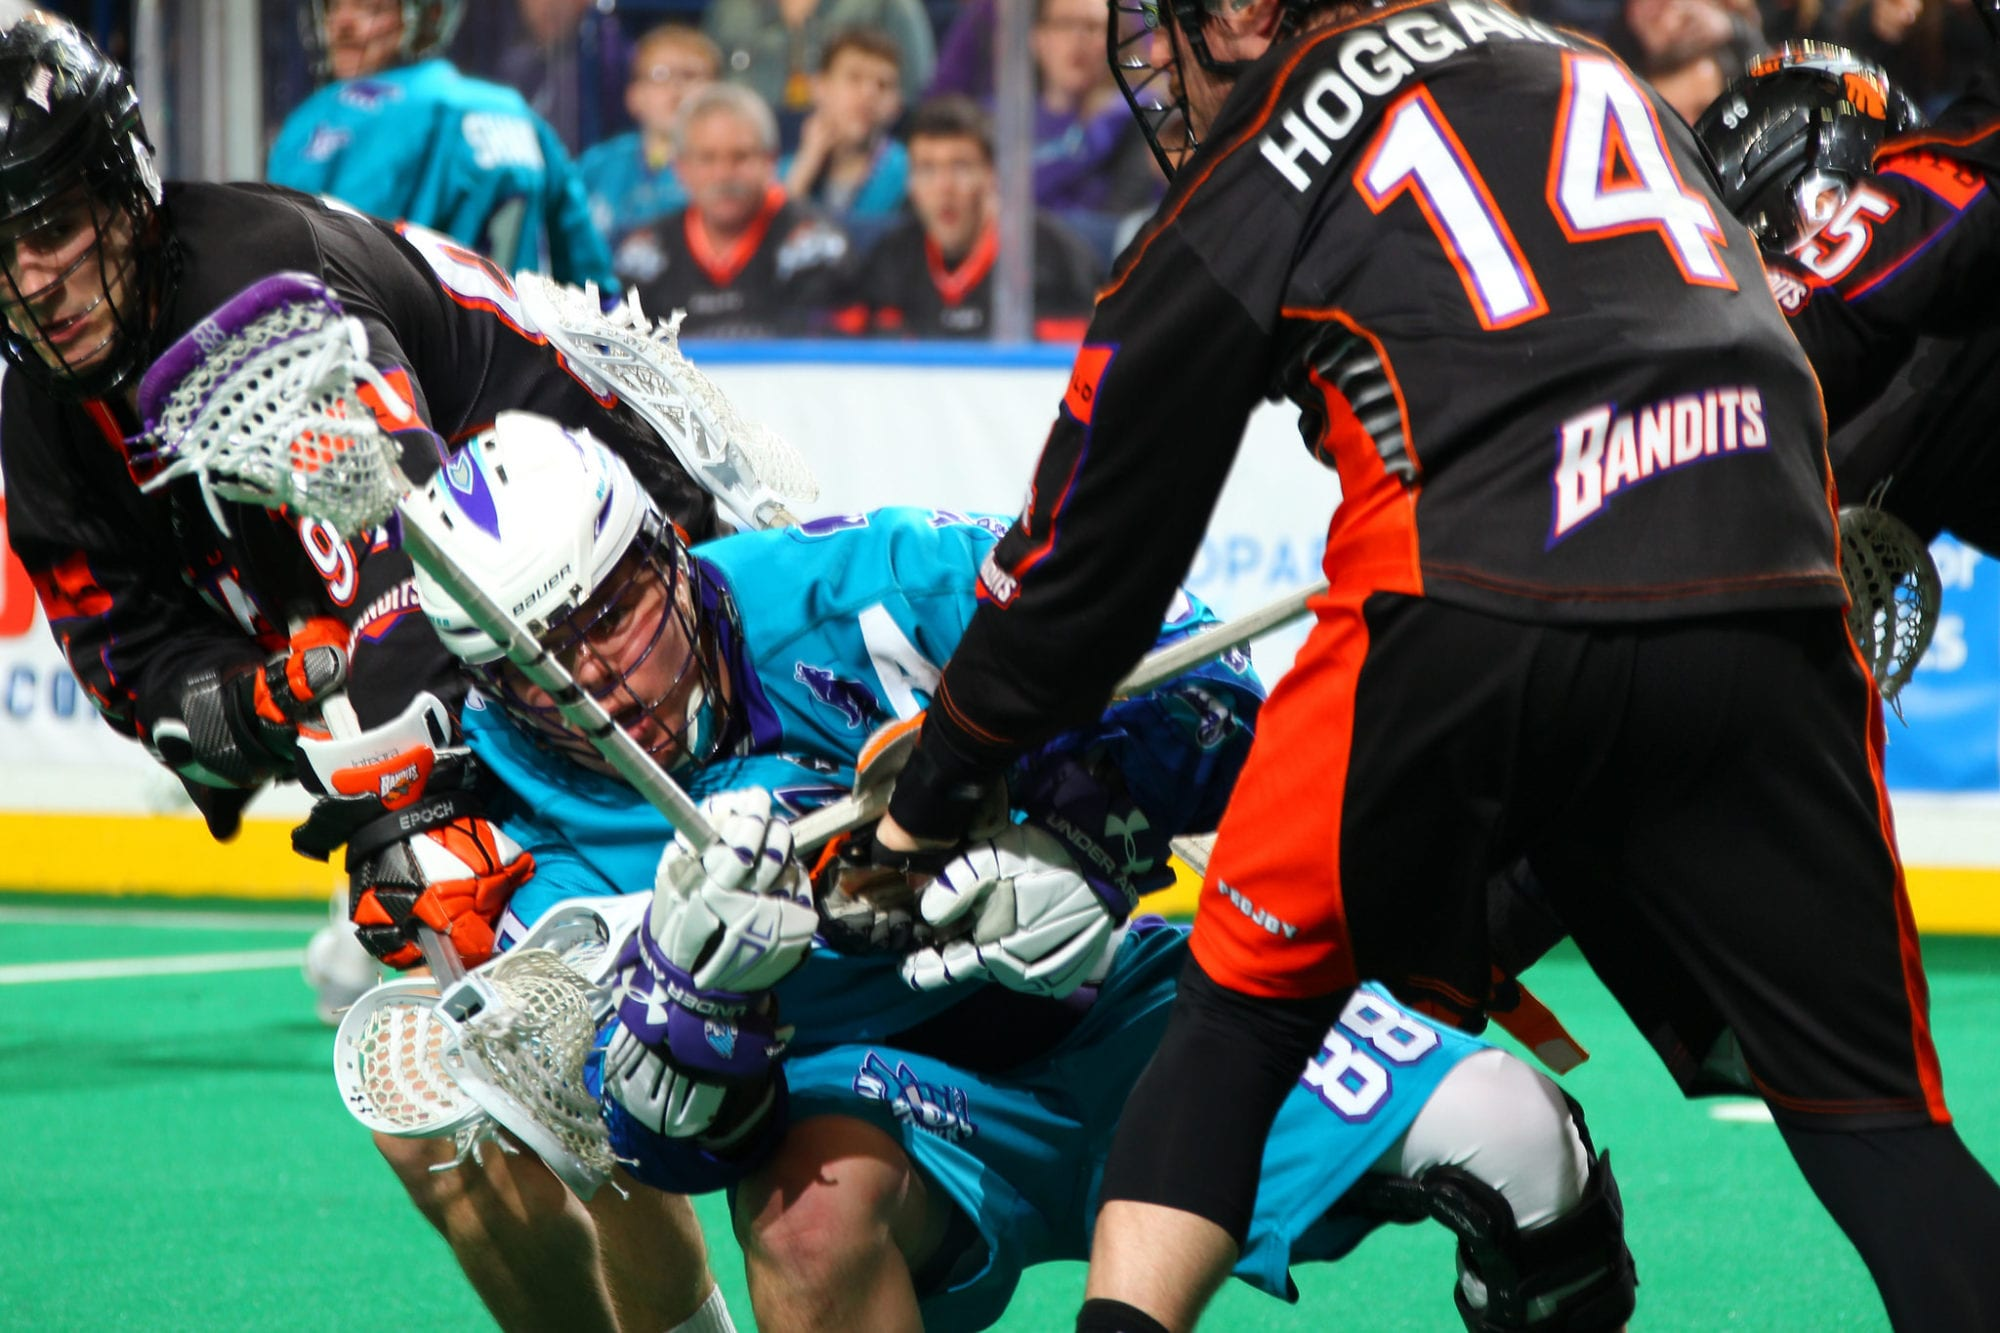 Rochester Knighthawks Buffalo Bandits NLL 2018 Photo: Bill Wippert